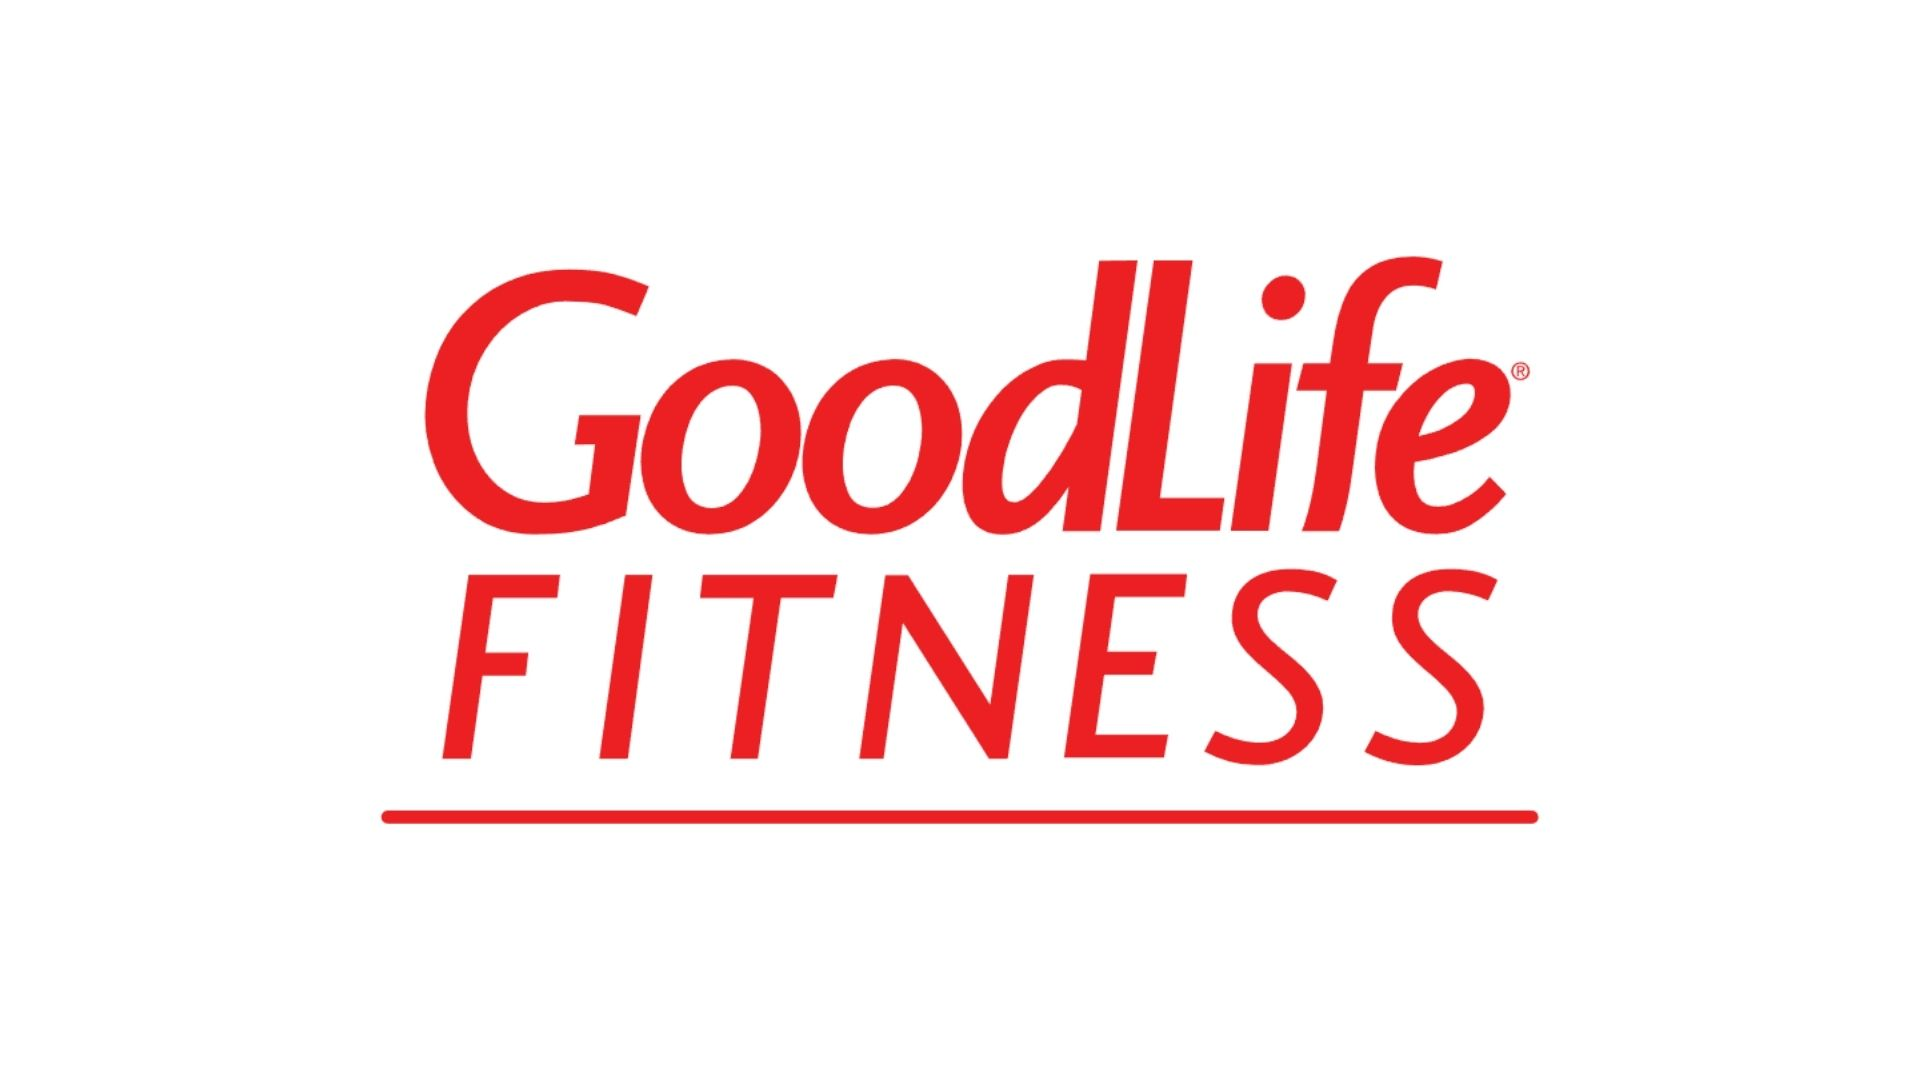 Goodlife Fitness Benefit